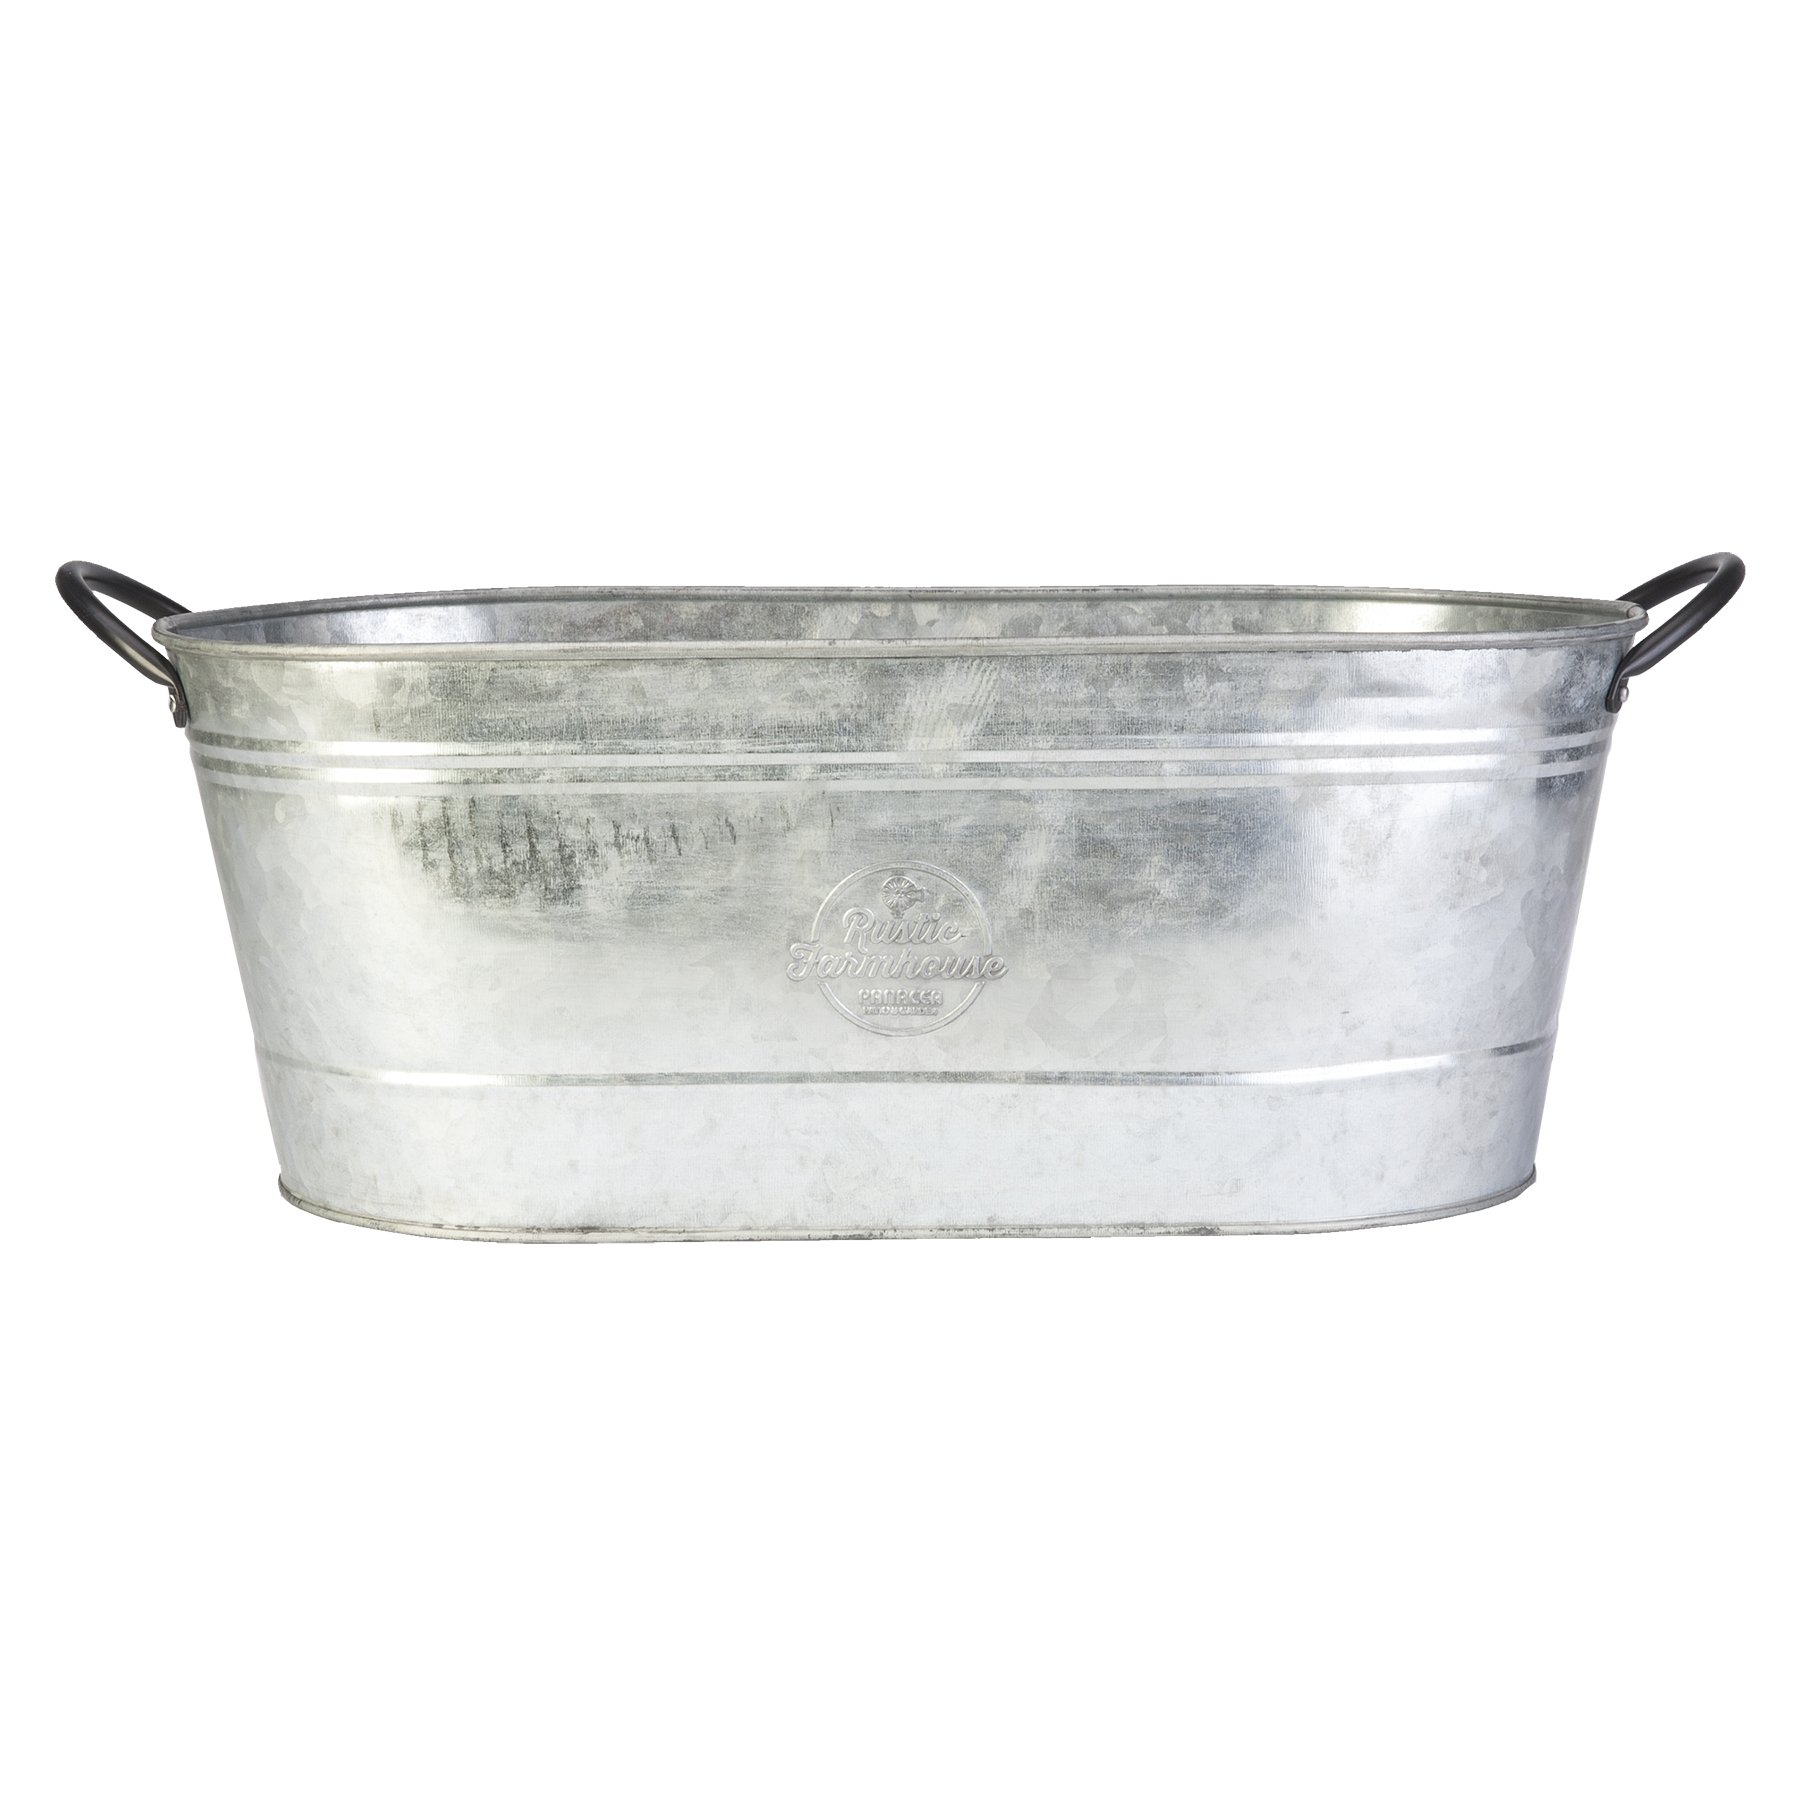 16'' Oval Washtub Planter, Aged Galvanized Finish by Panacea